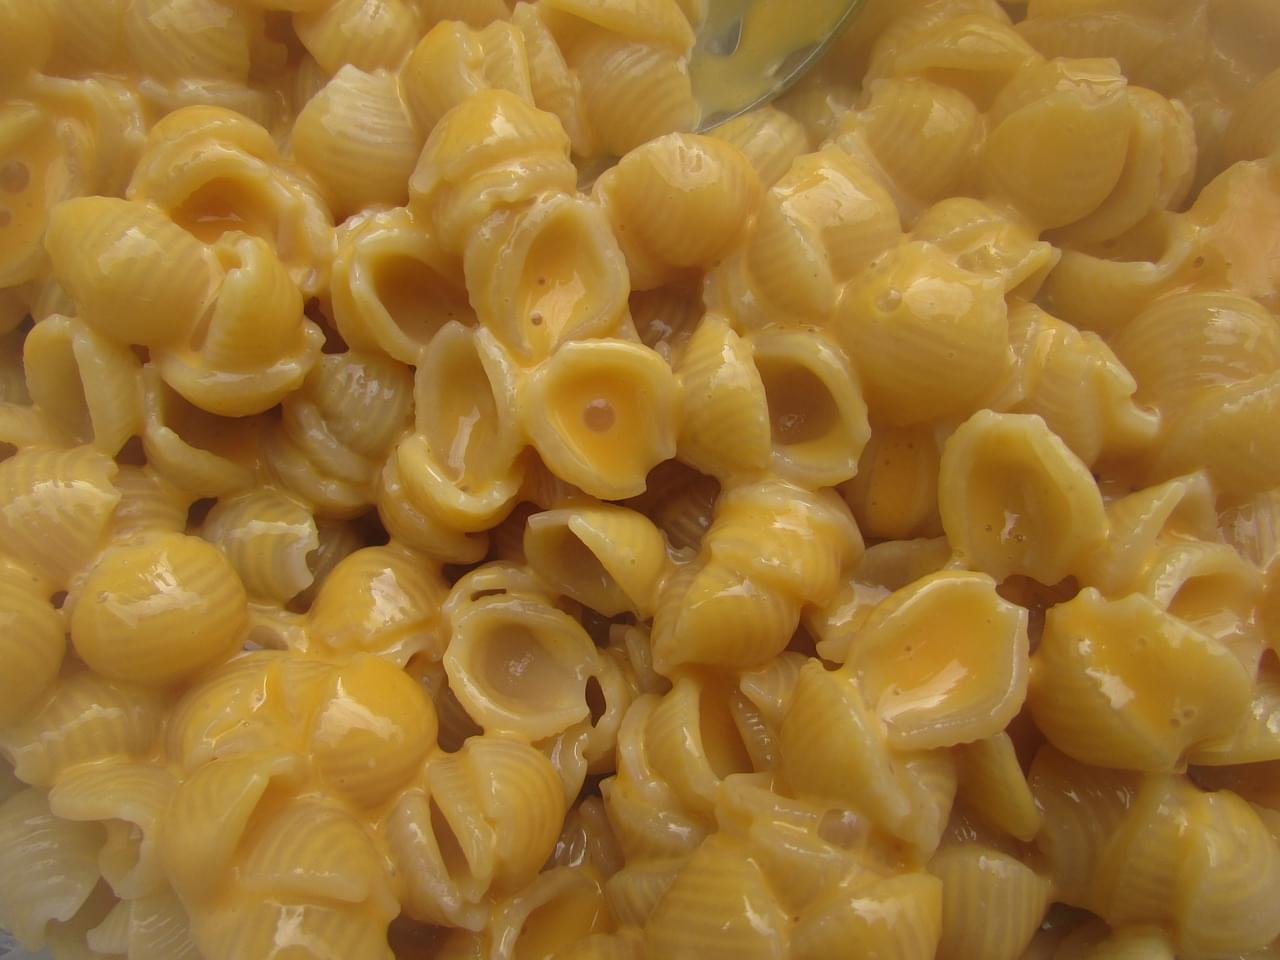 Kraft Is Bringing Pumpkin Spice Mac and Cheese to the U.S.